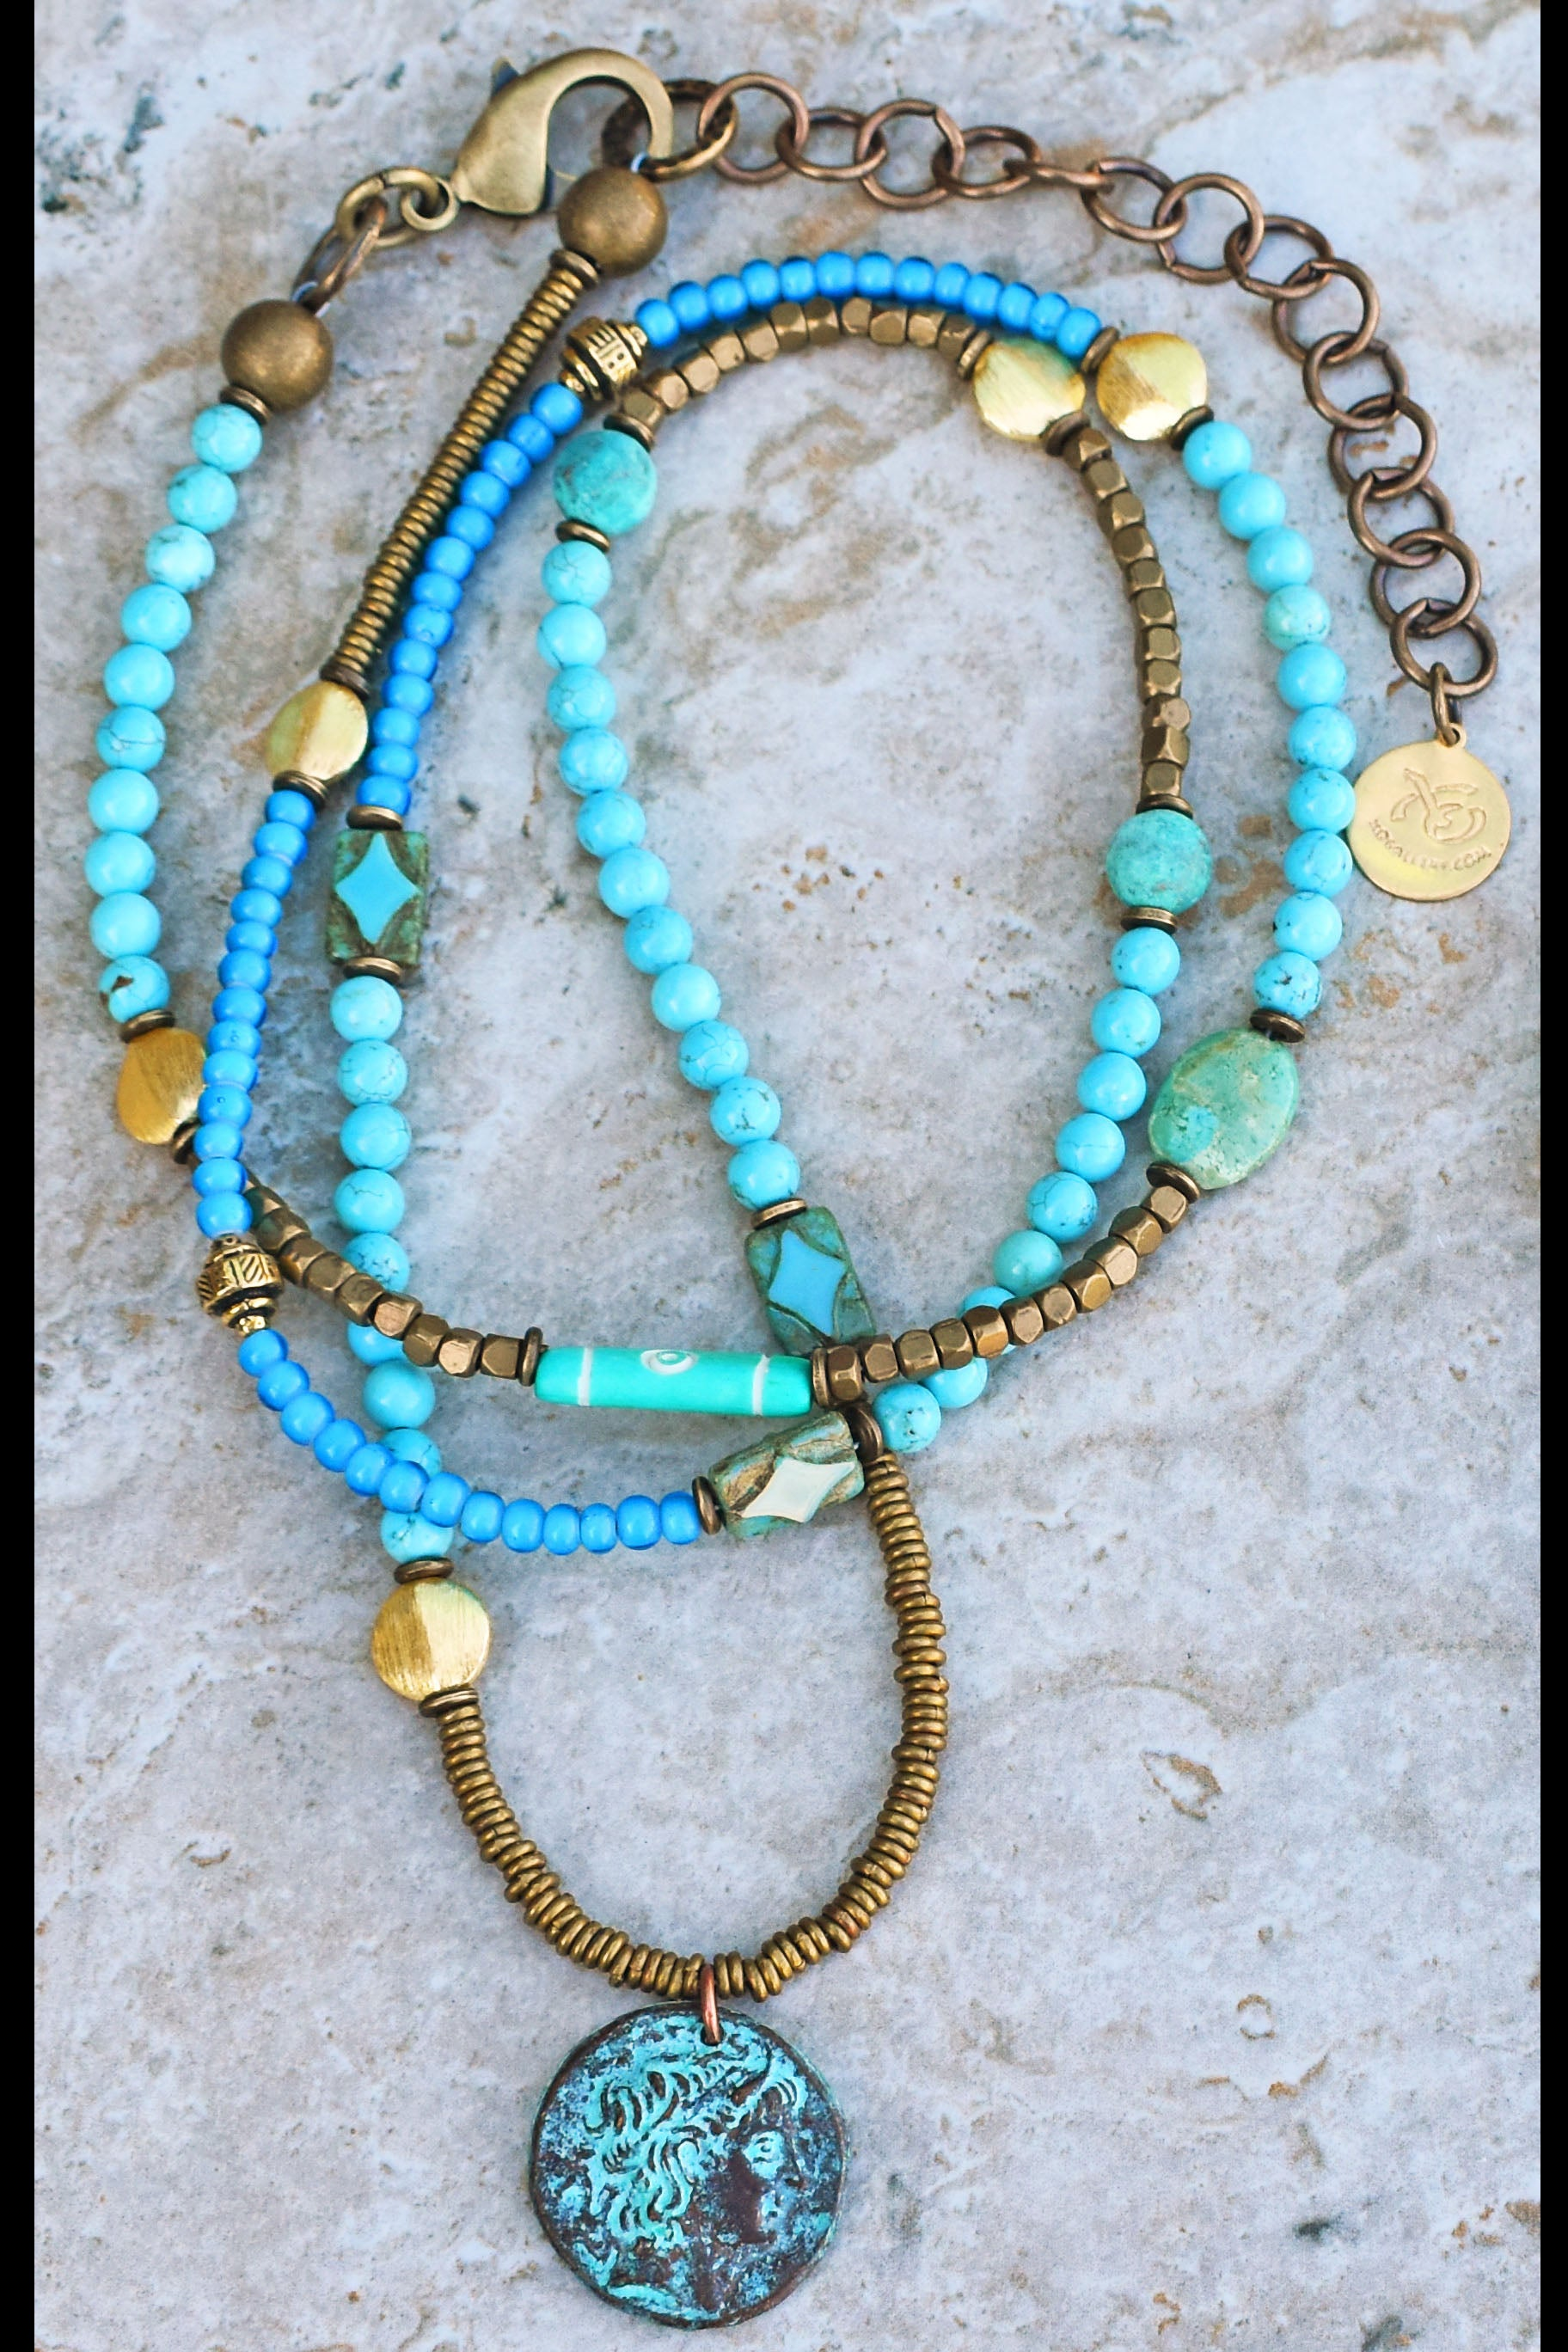 Long Bohemian Mixed Blues, Brass and Verdigris Coin Necklace